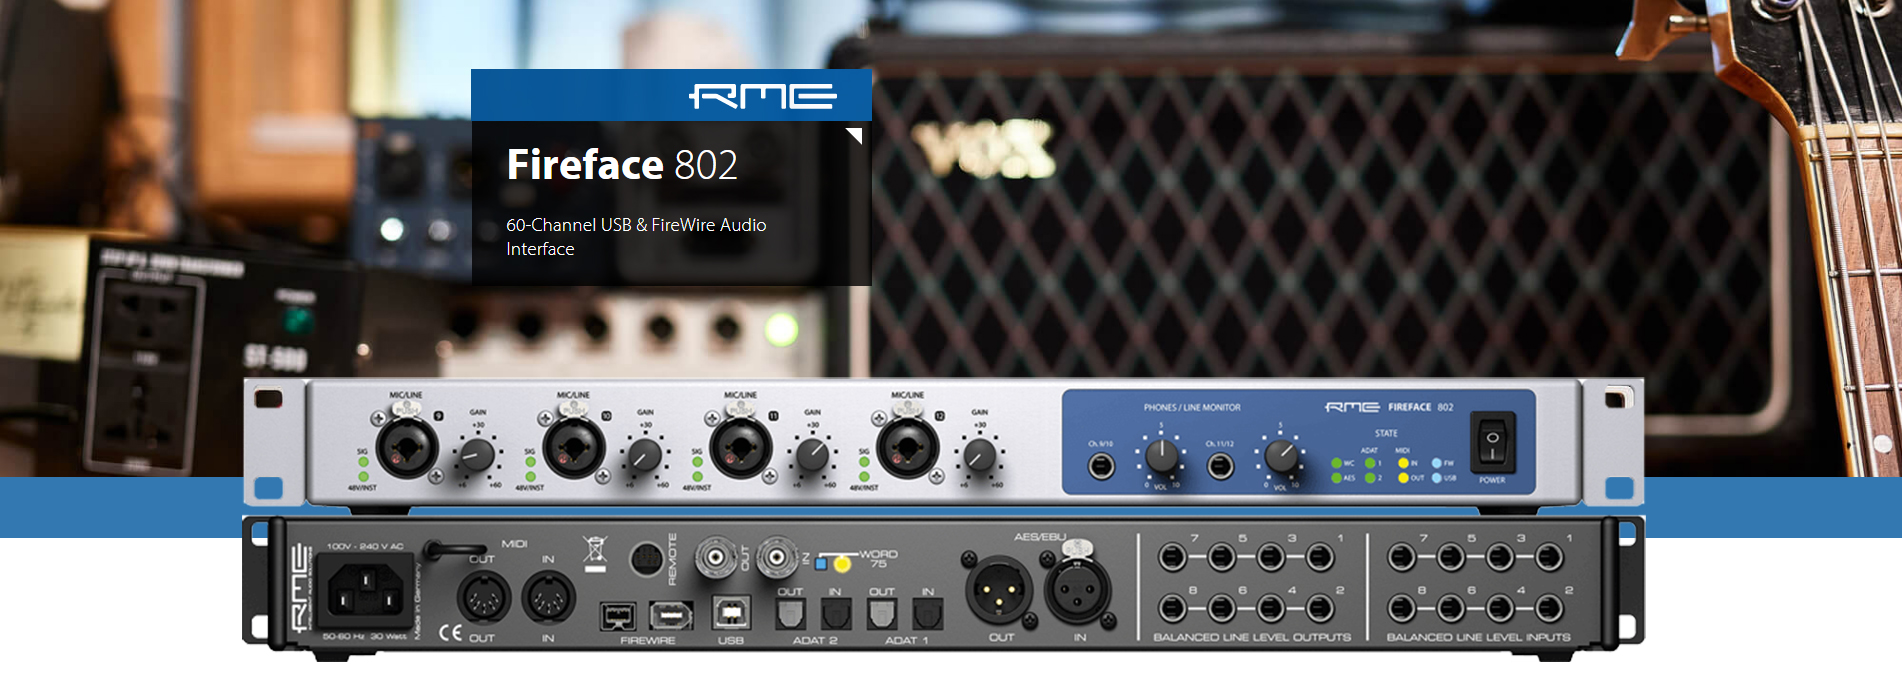 RME Fireface 802 60Channel USB & FireWire Audio Interface Display1